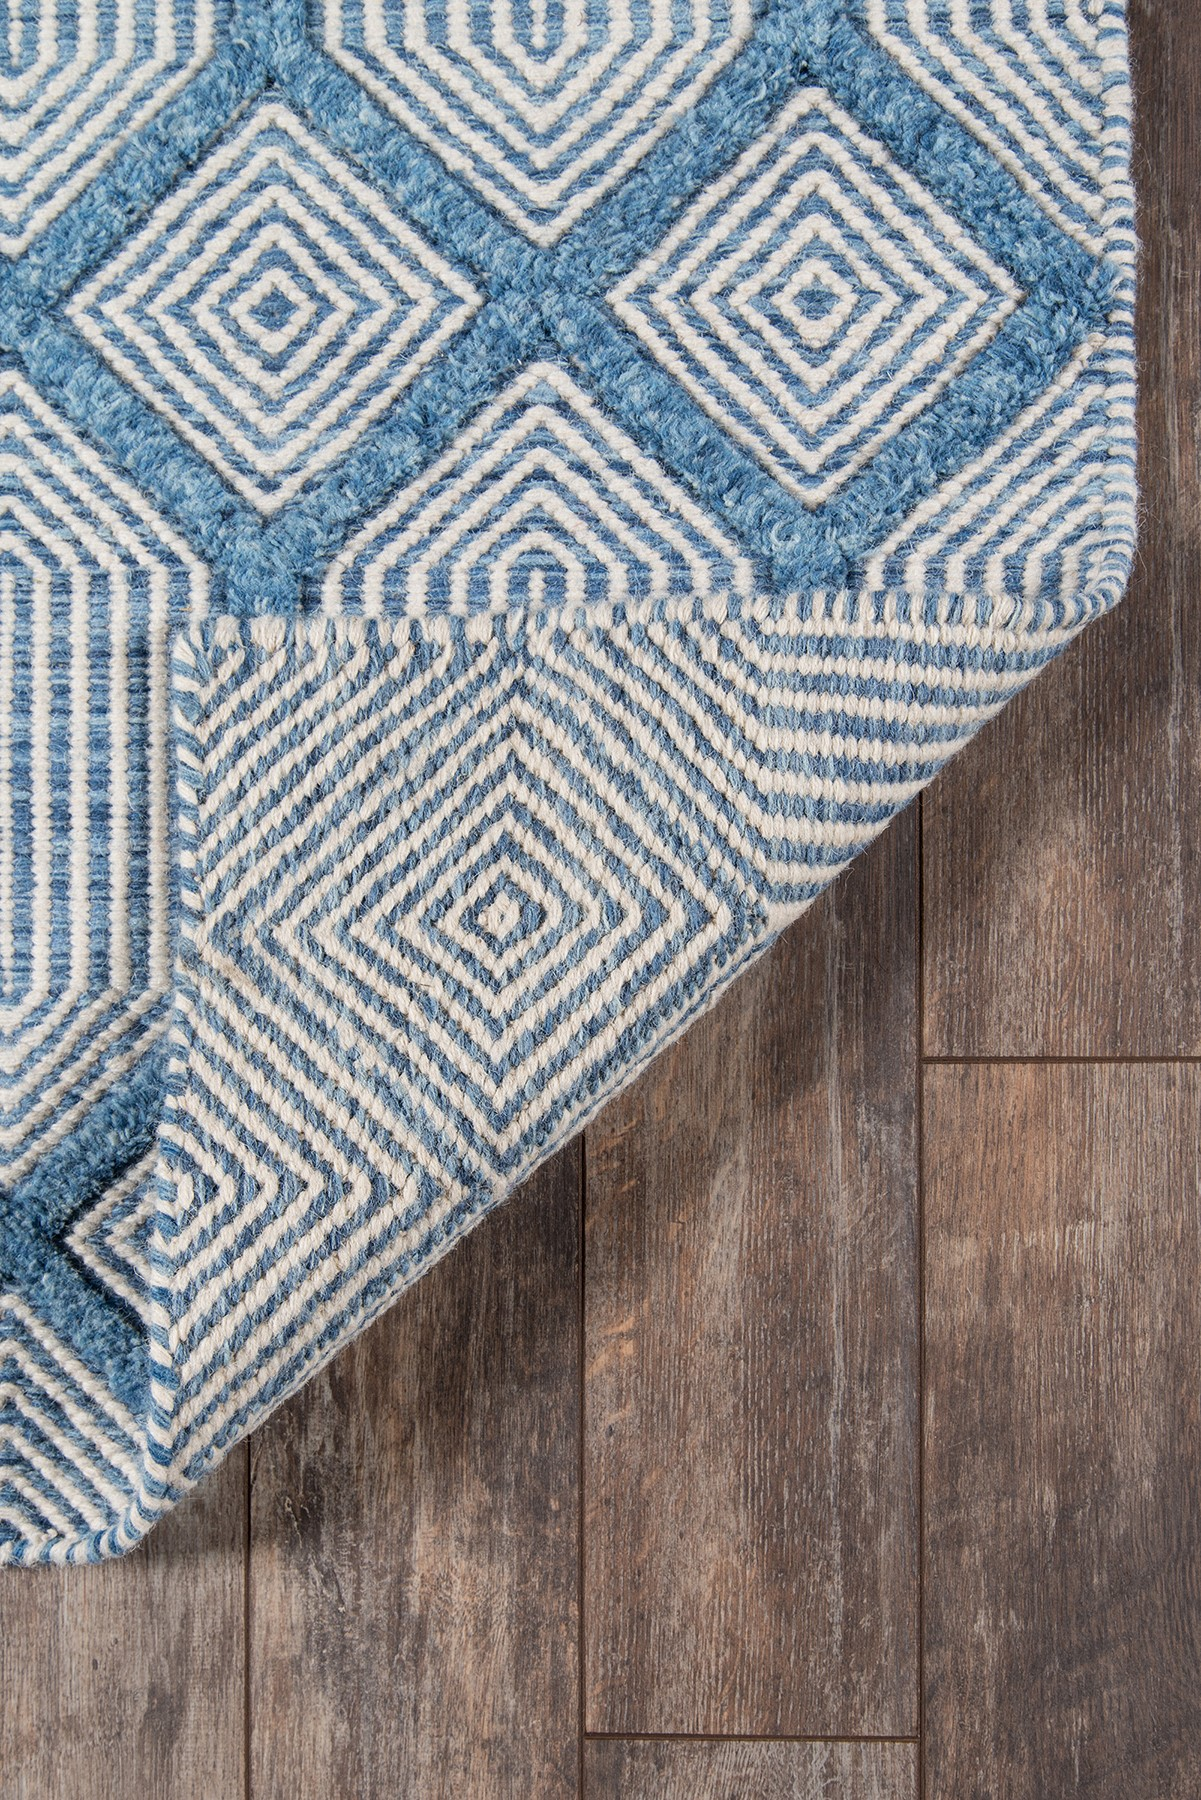 Contemporary LANGDLGD-4 Area Rug - Langdon Collection